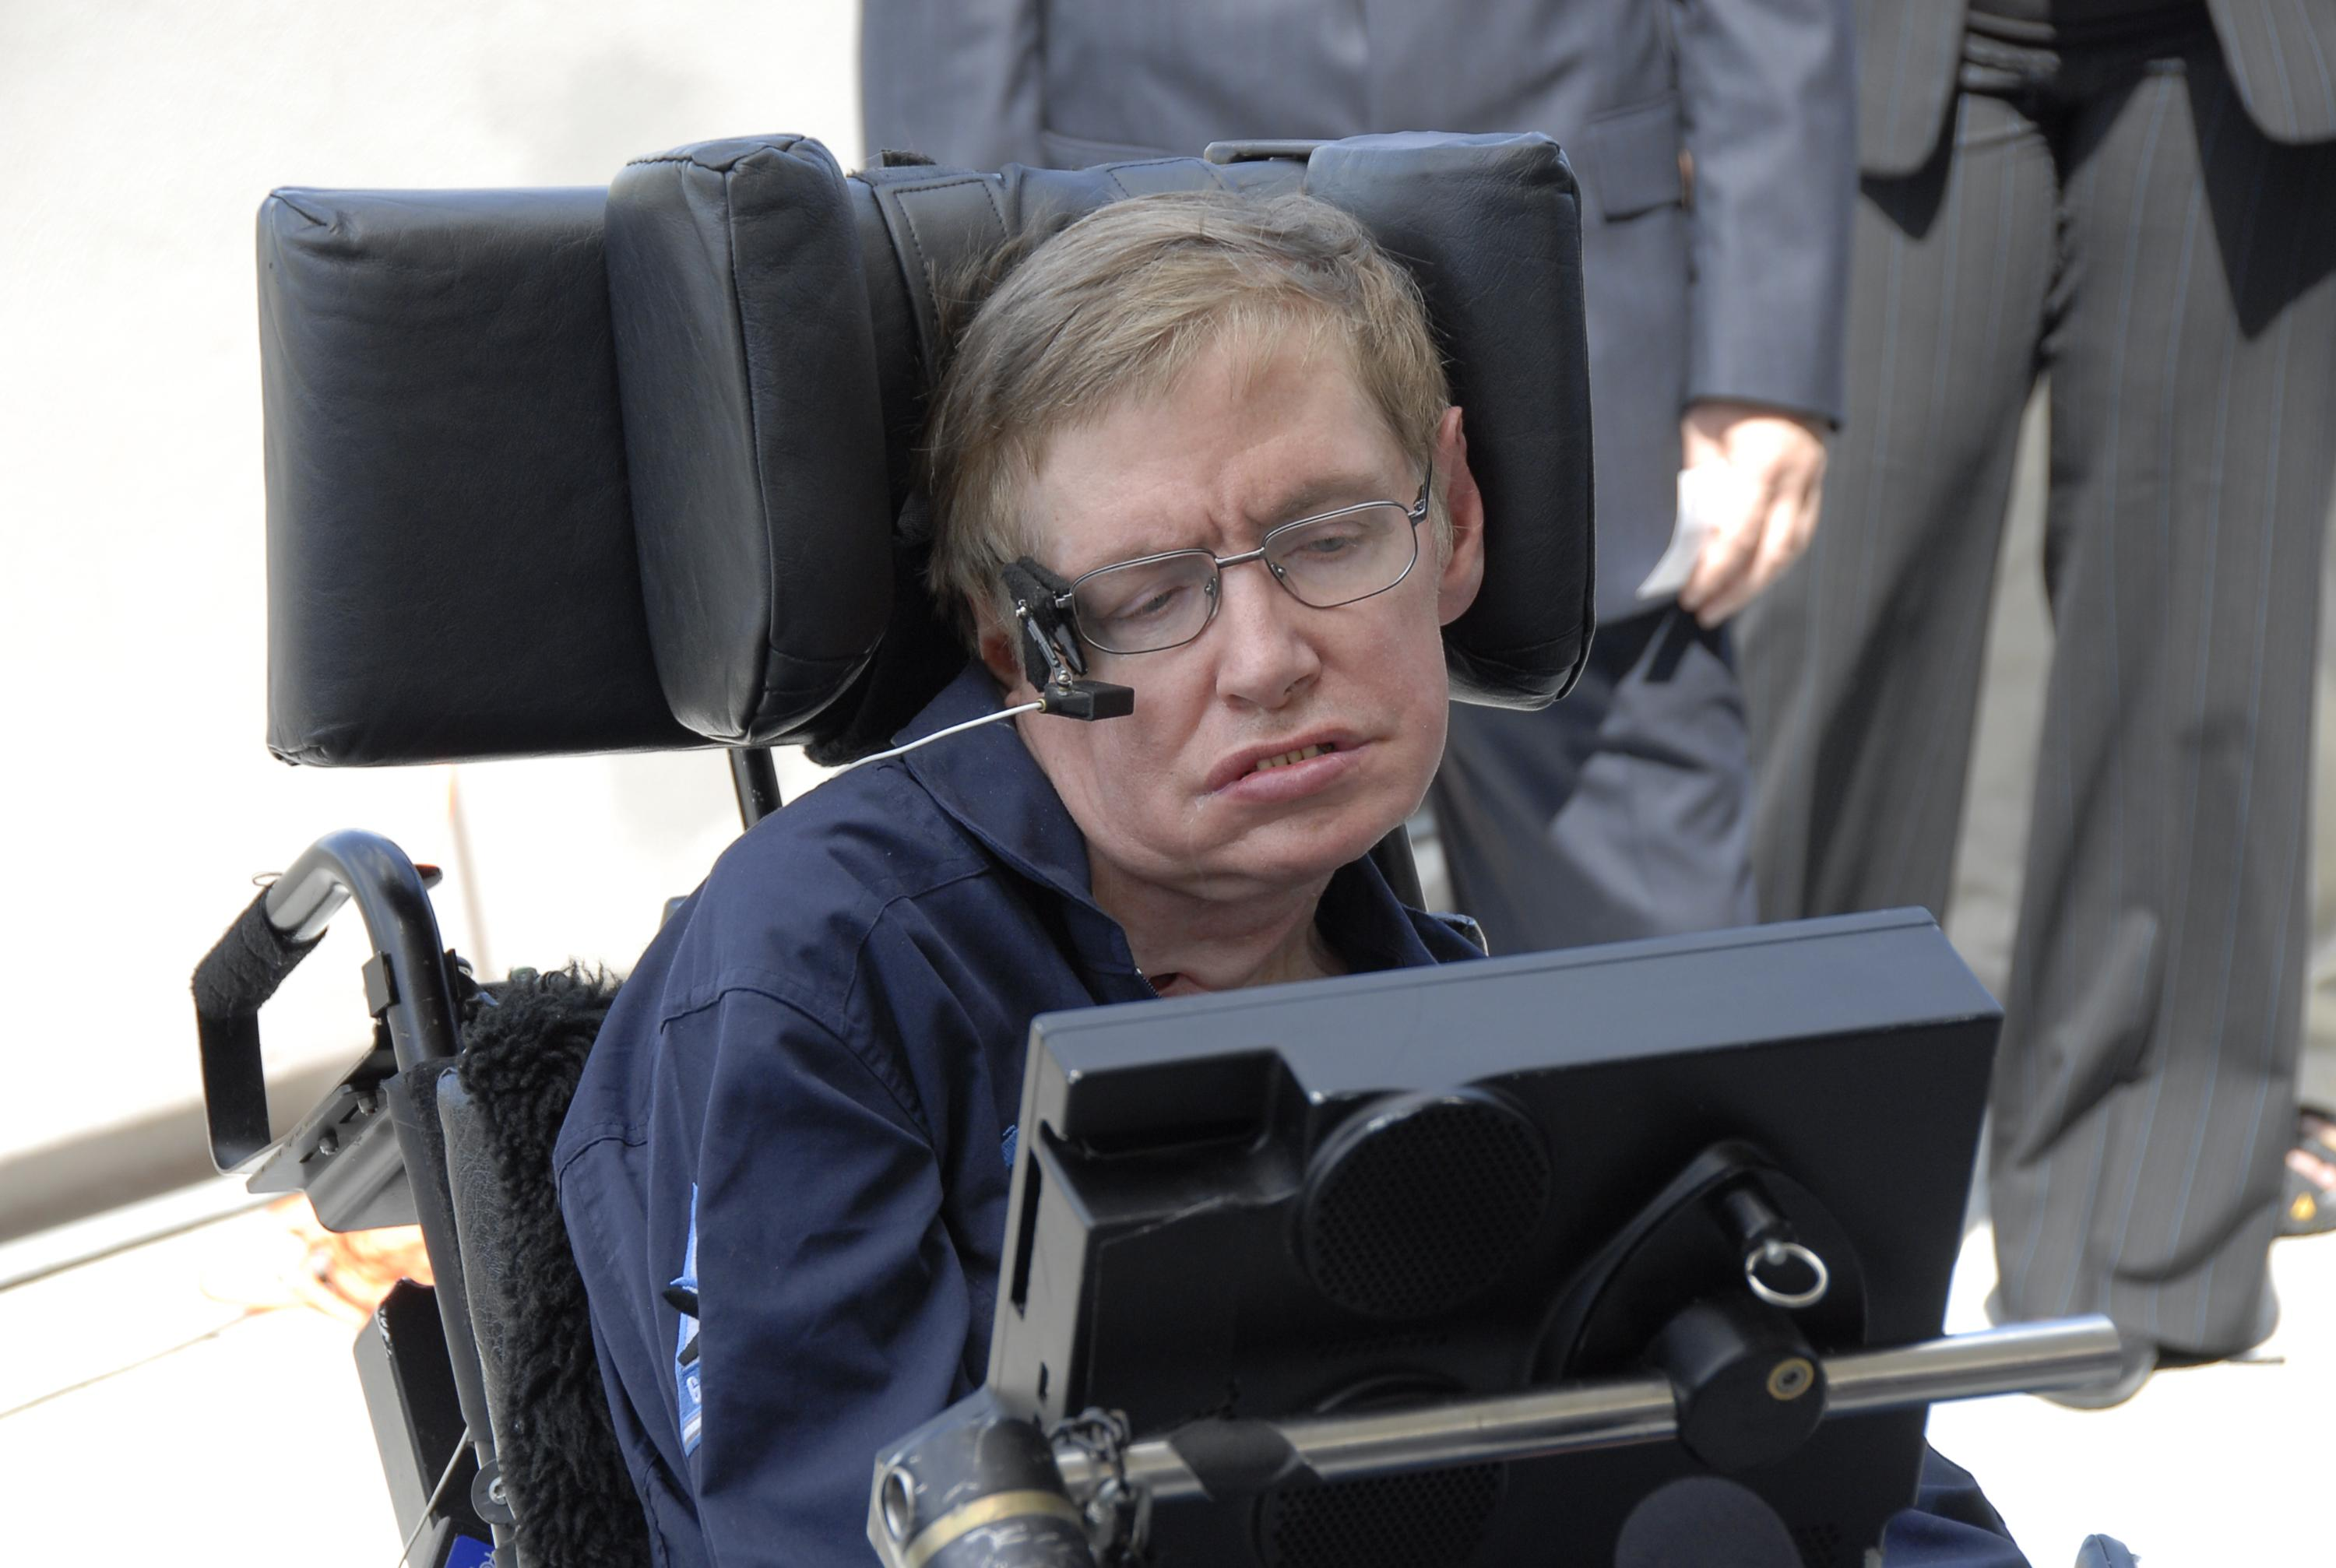 What was Stephen Hawking's Cause of Death?